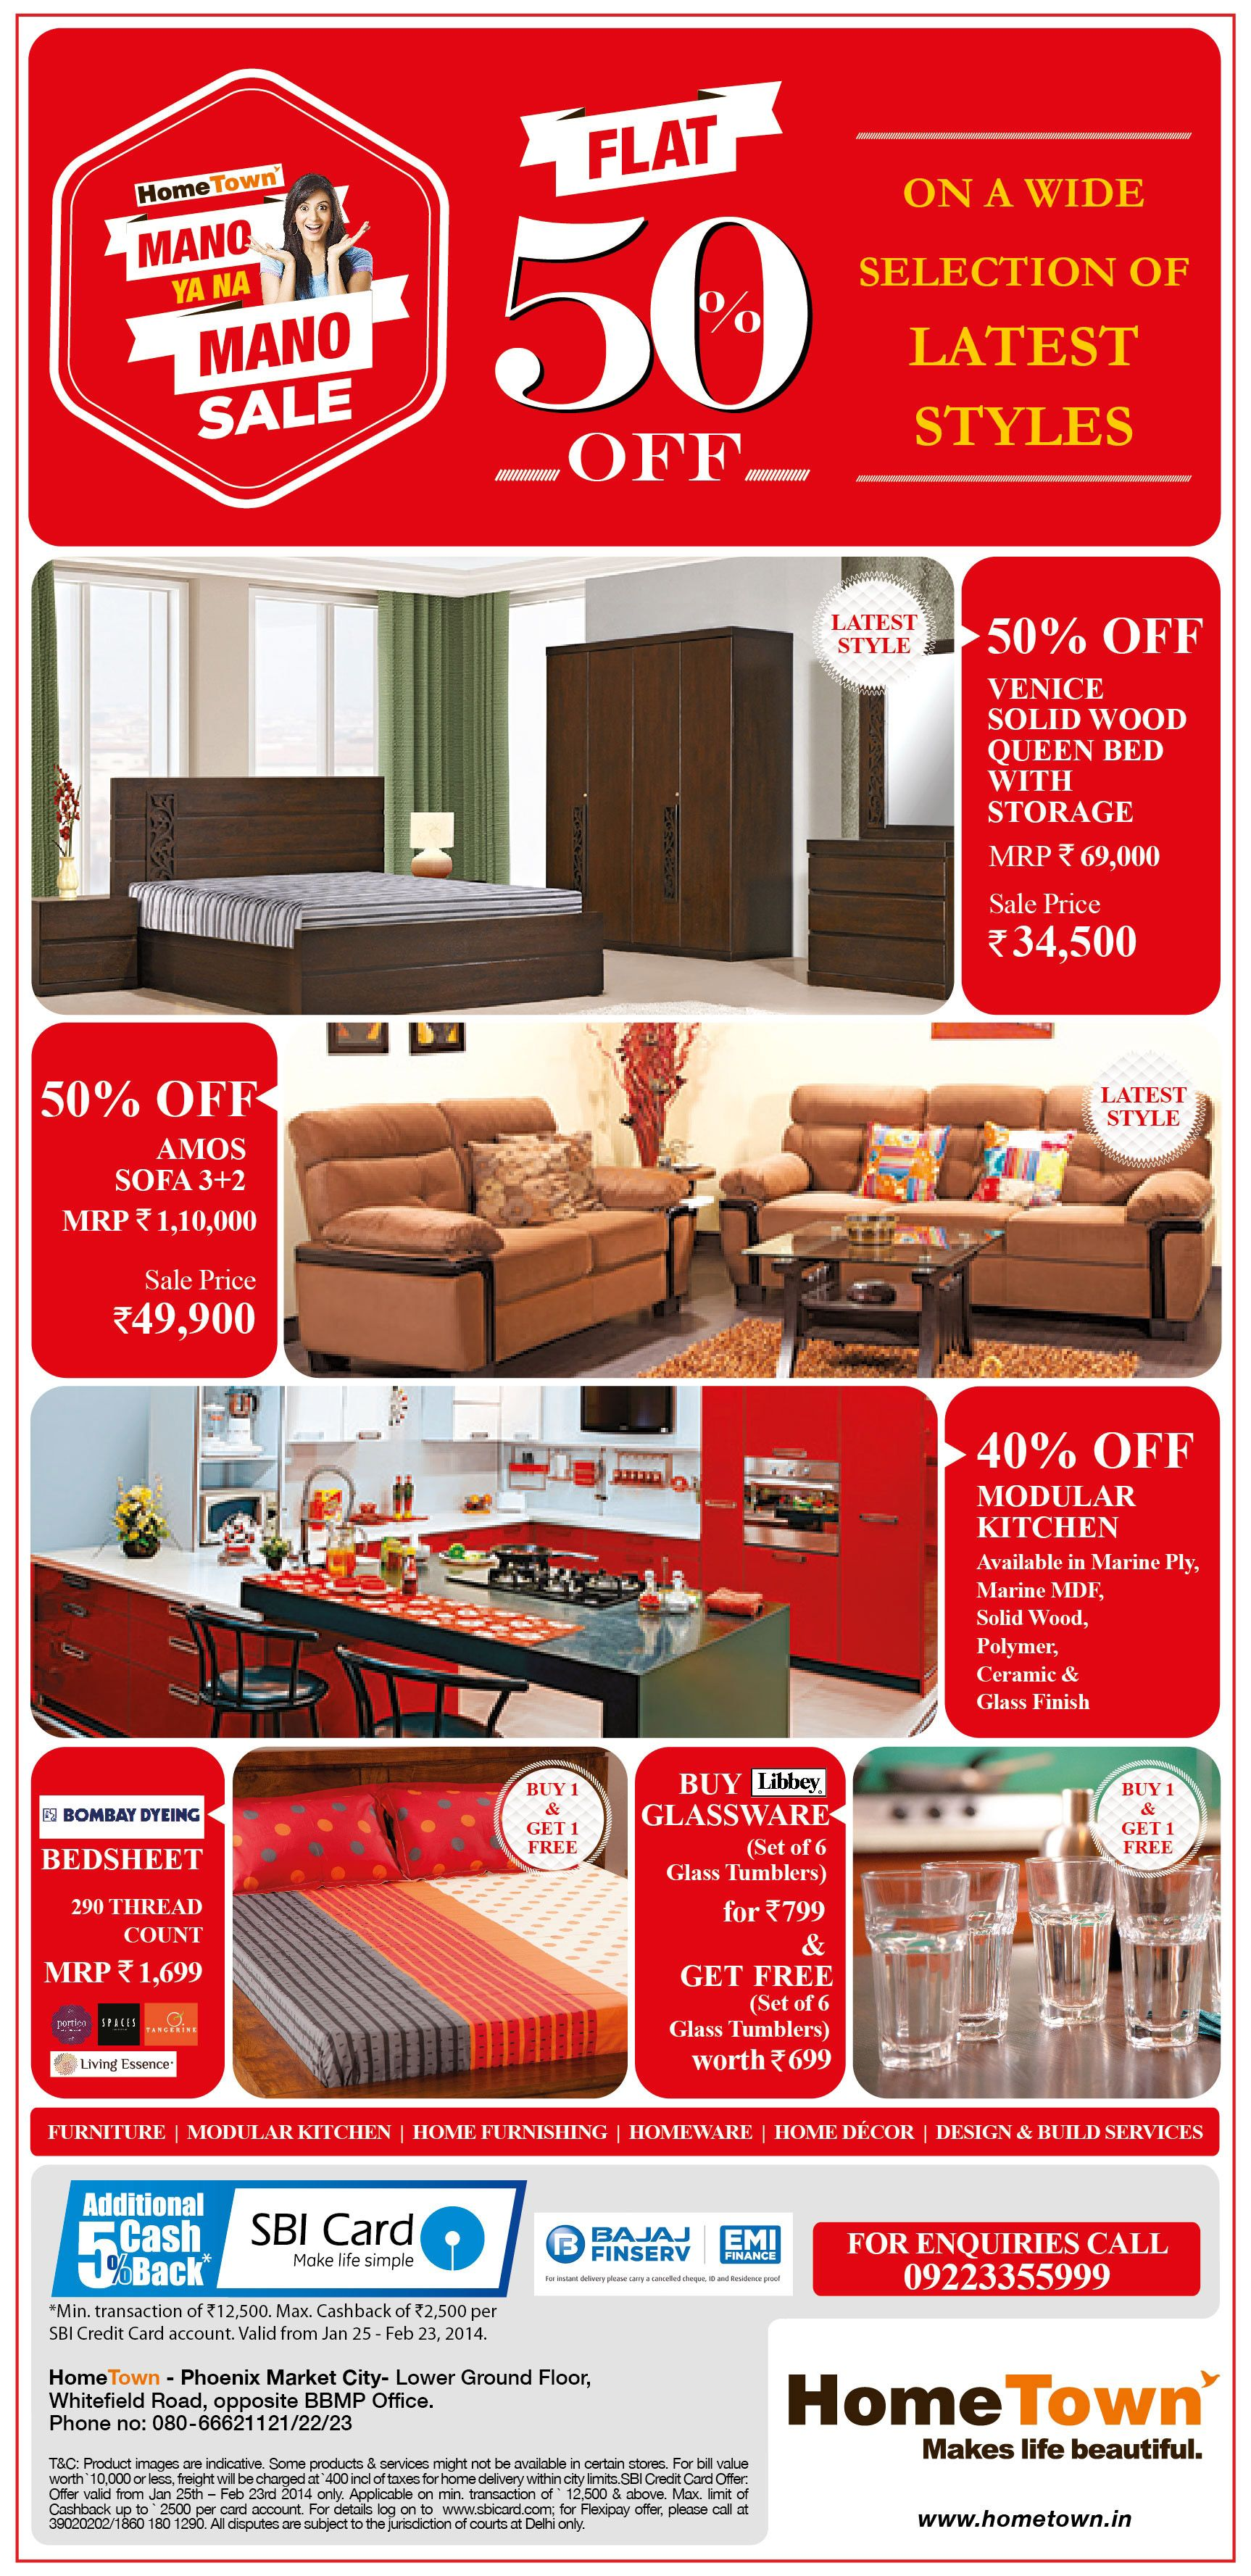 Get Flat 50 Off On A Wide Selection Of Latest Styles At Hometown Walk In And Check Out Many More Offers On Products That Will Sui Bed Storage Wood Beds Home